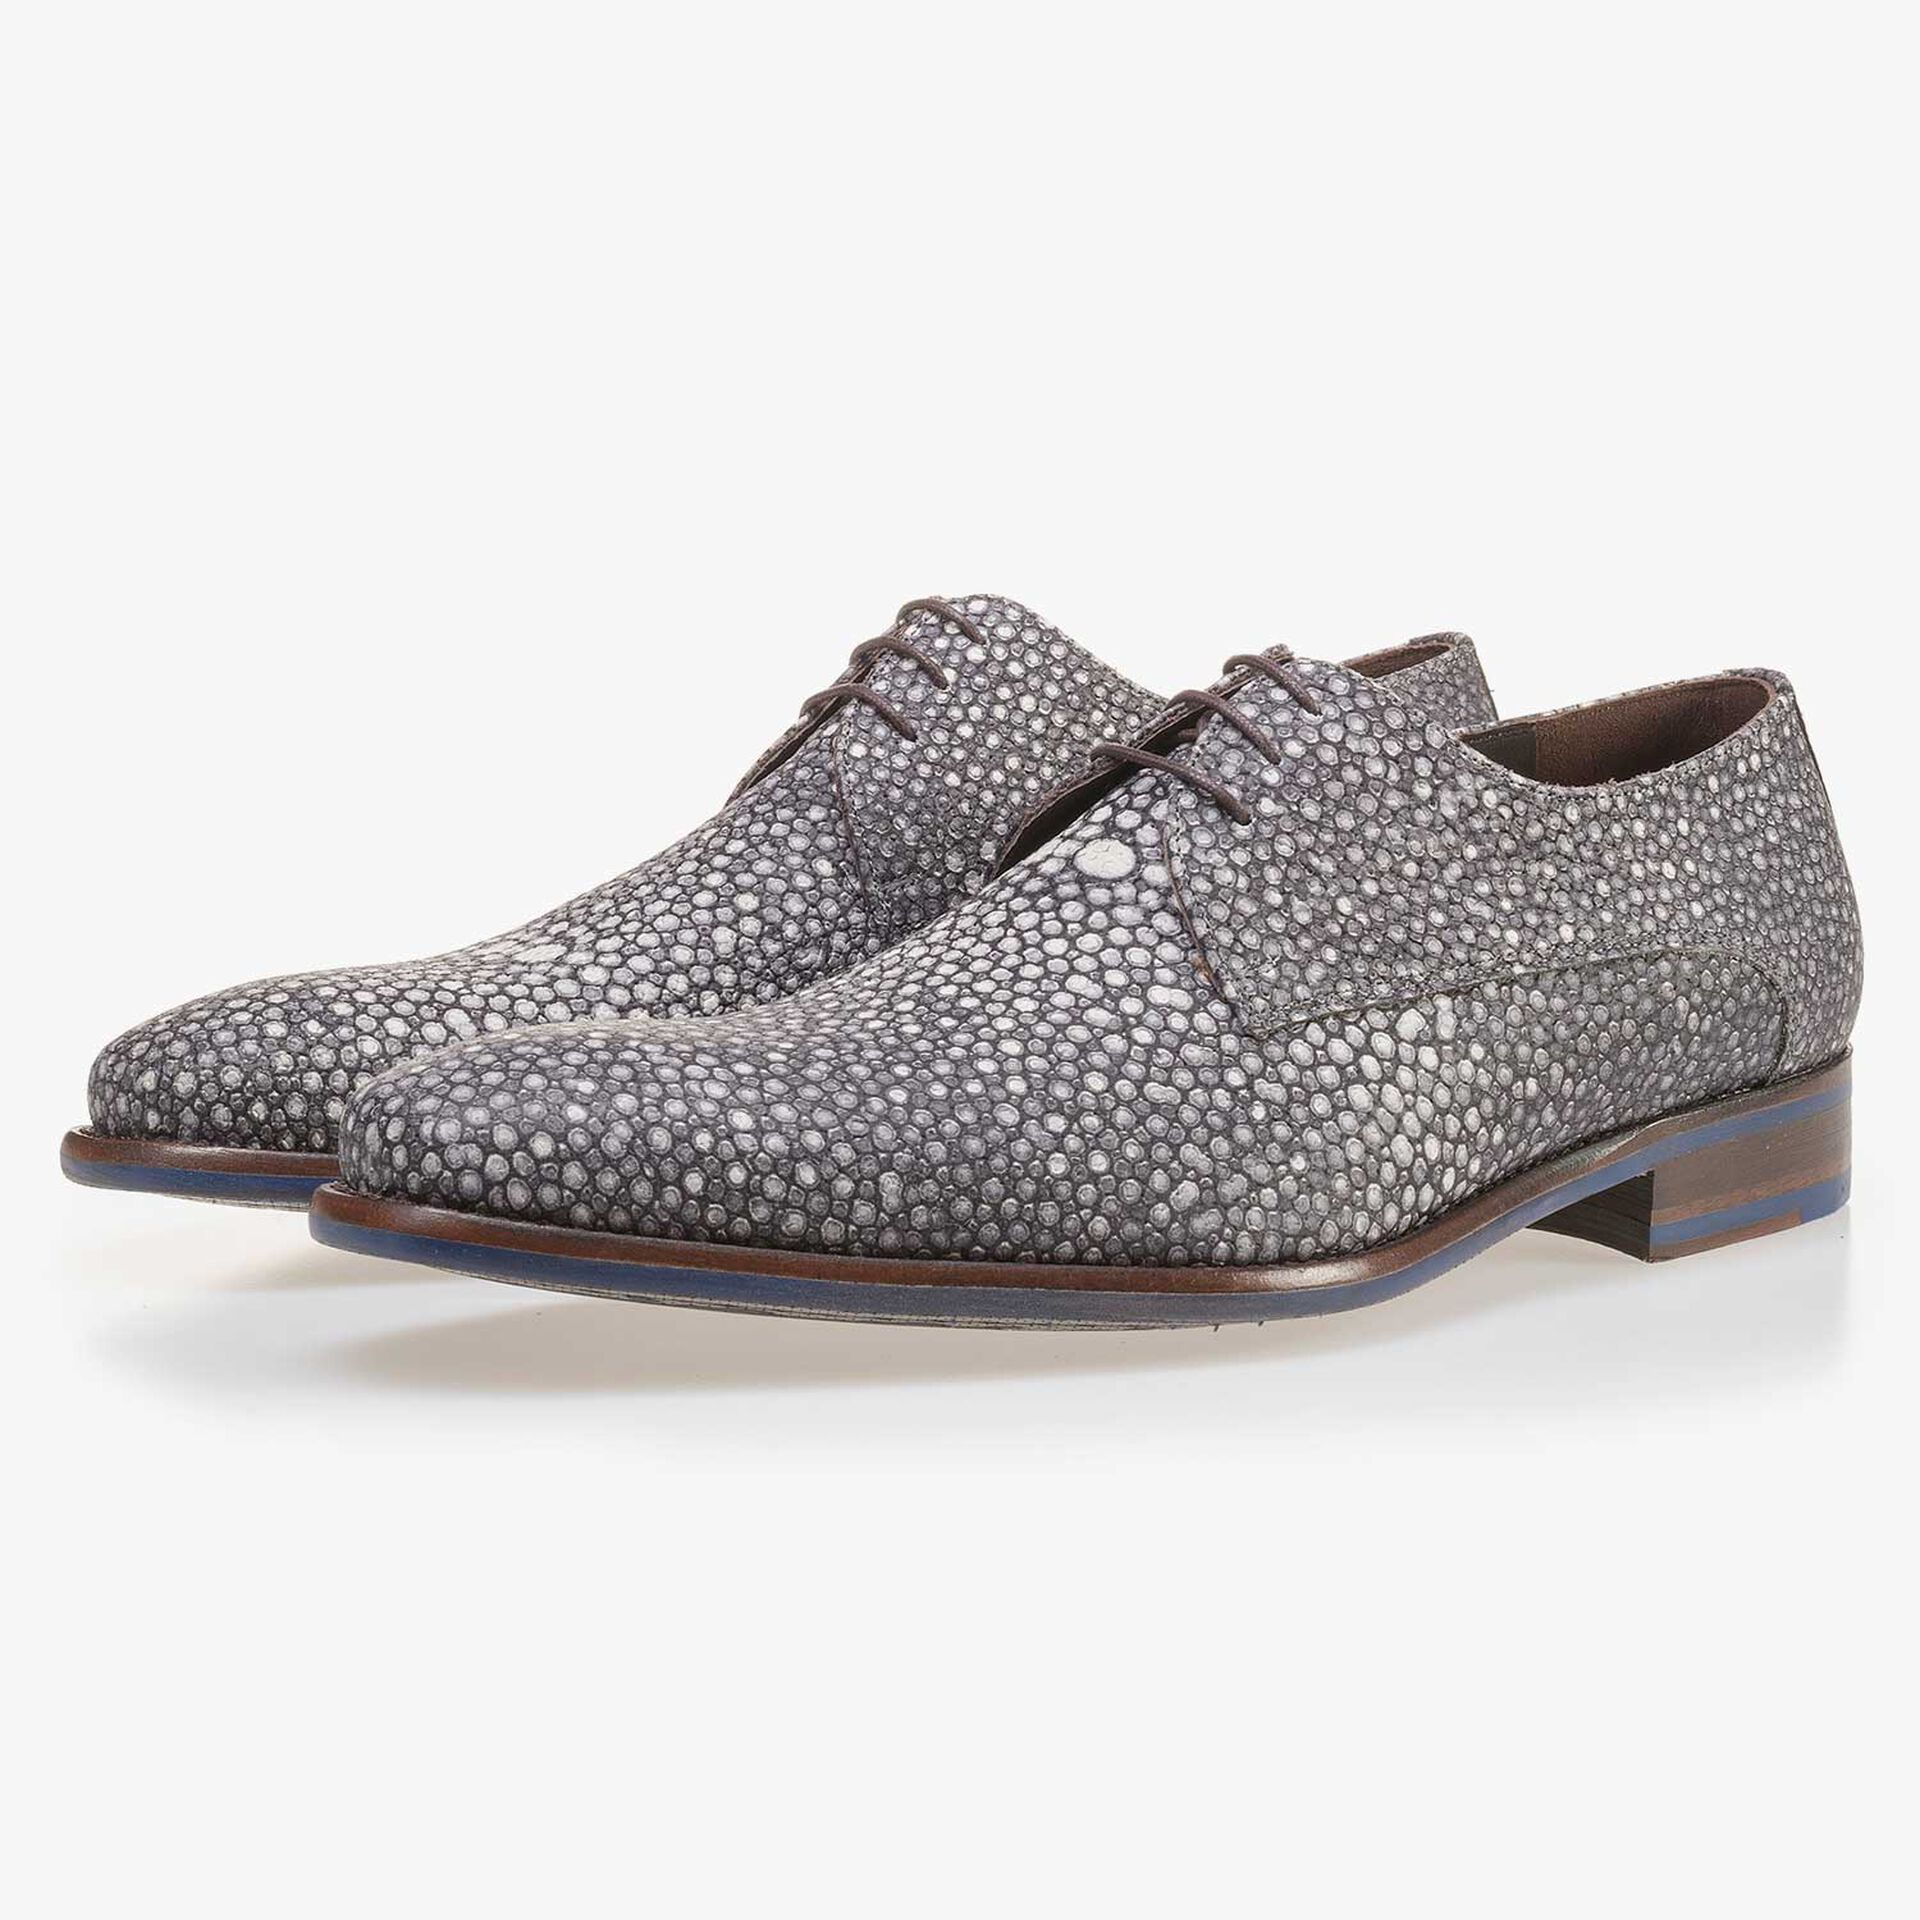 Grey leather lace shoe with pattern